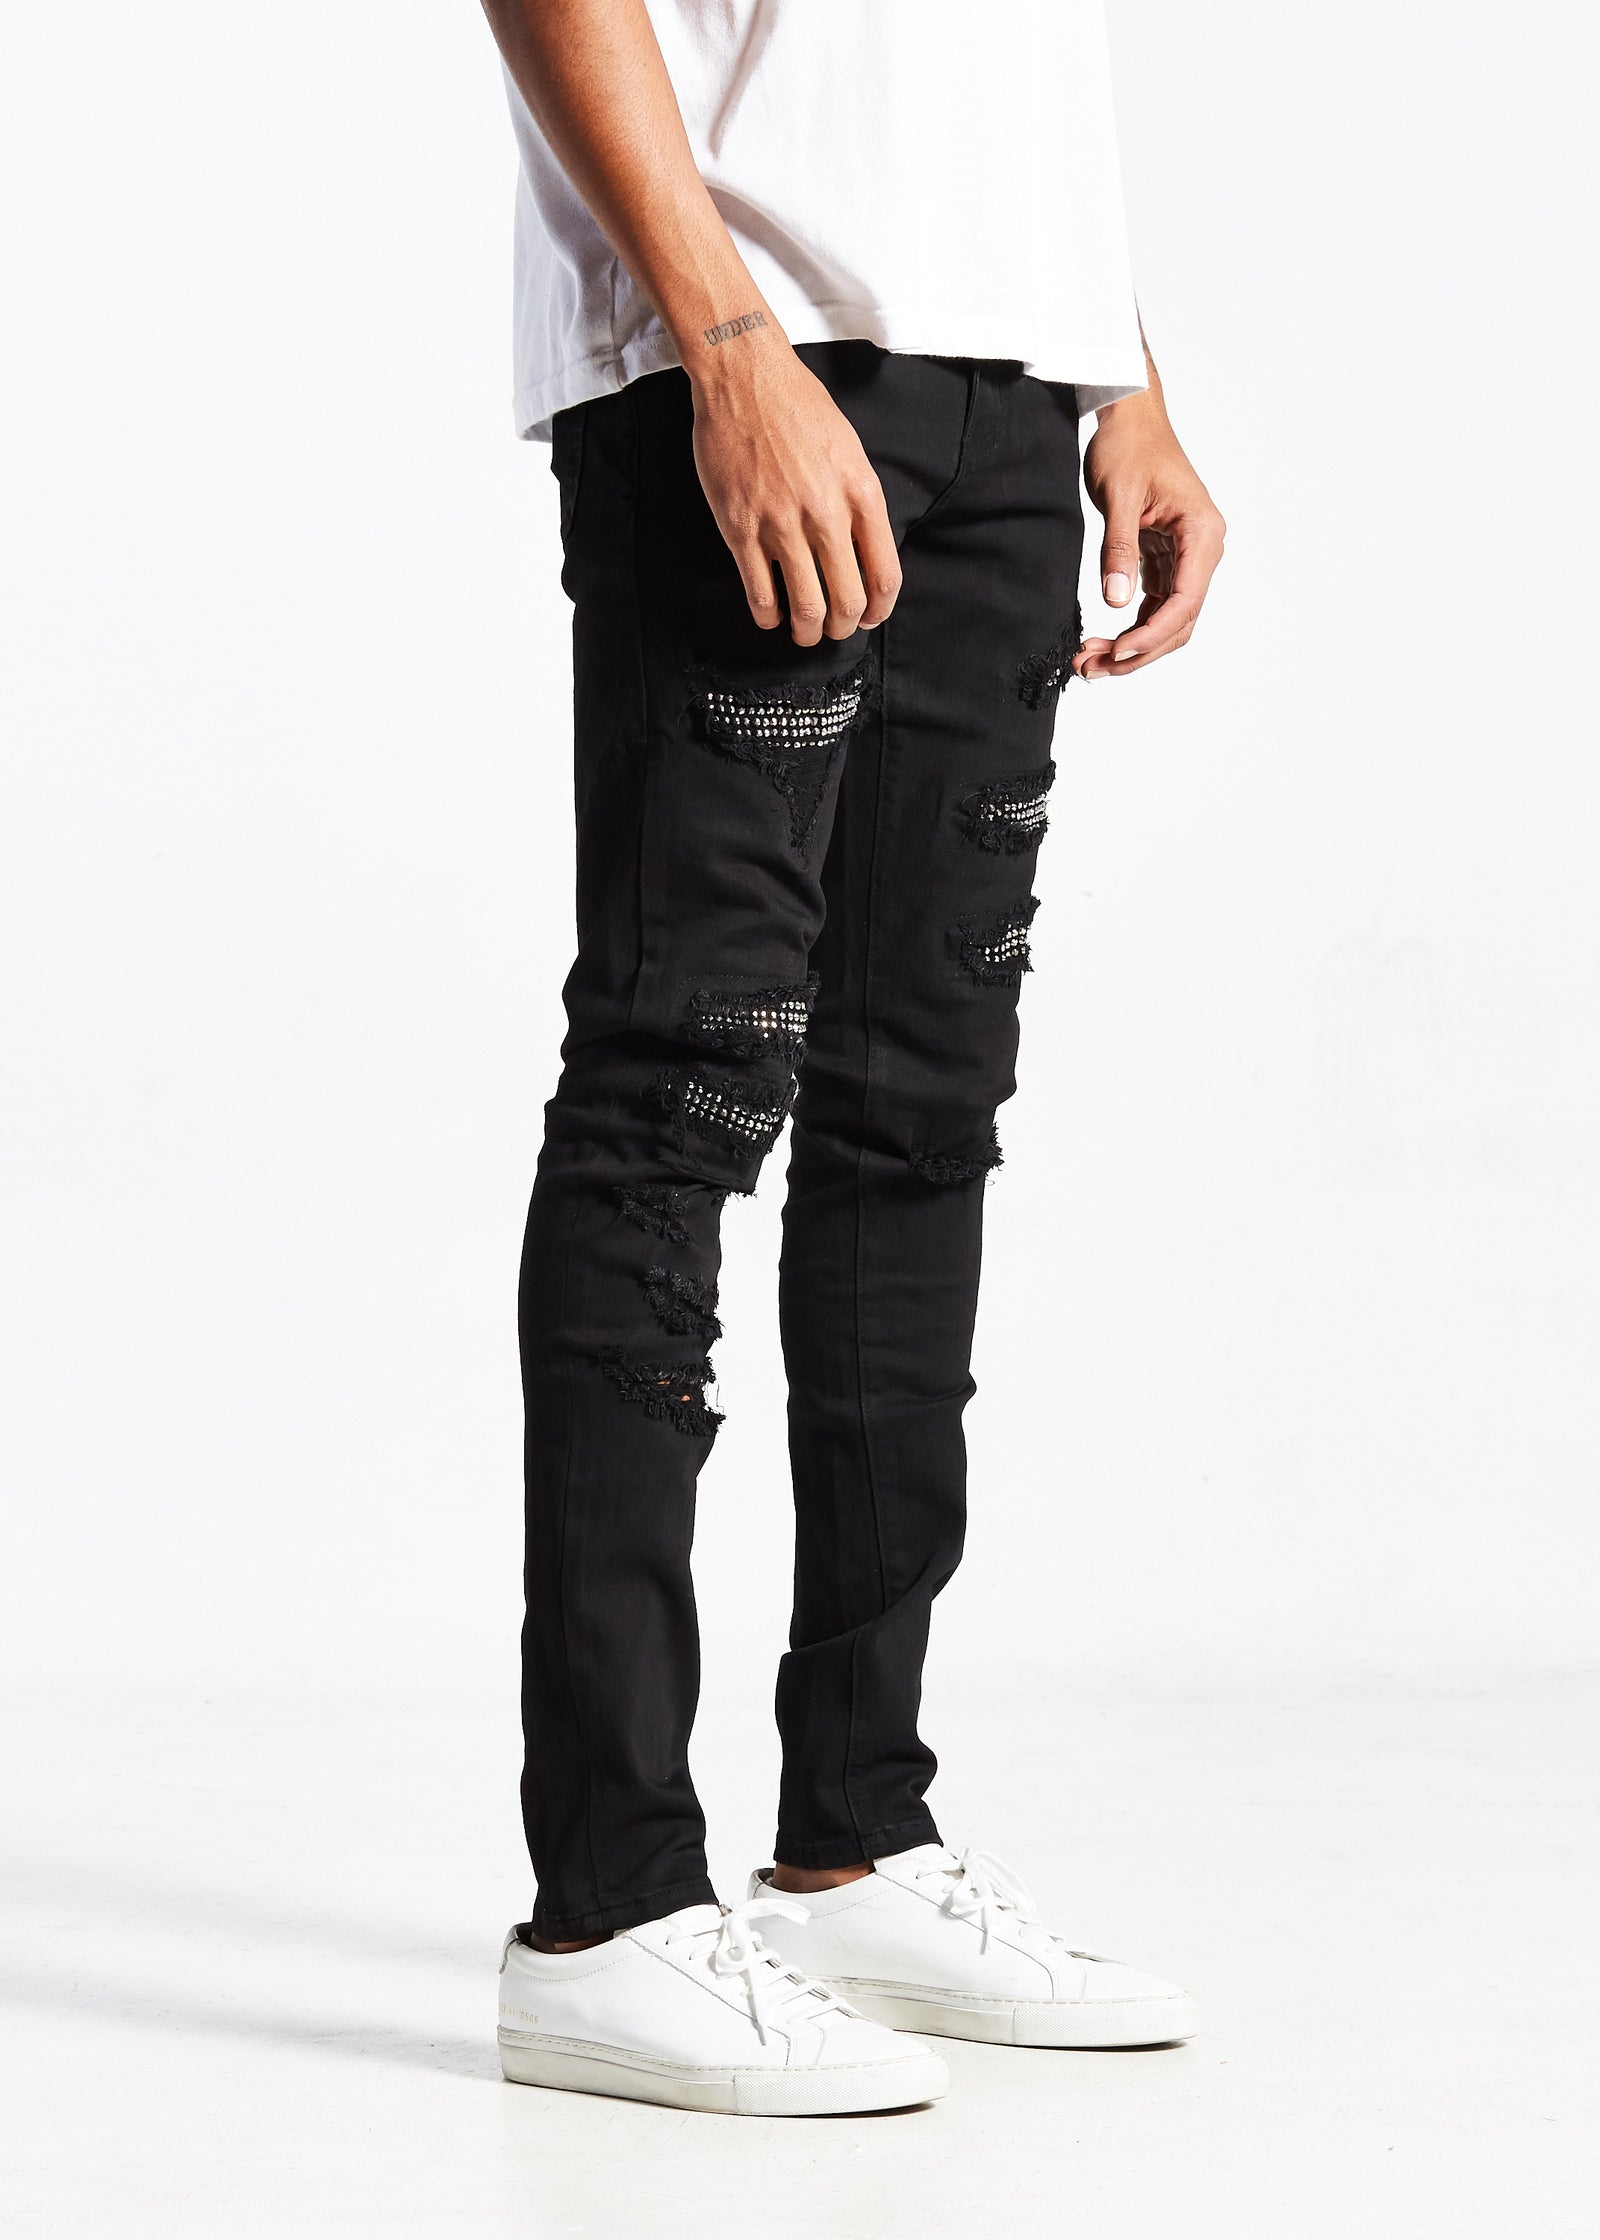 Zeppelin Denim (Jet Black)